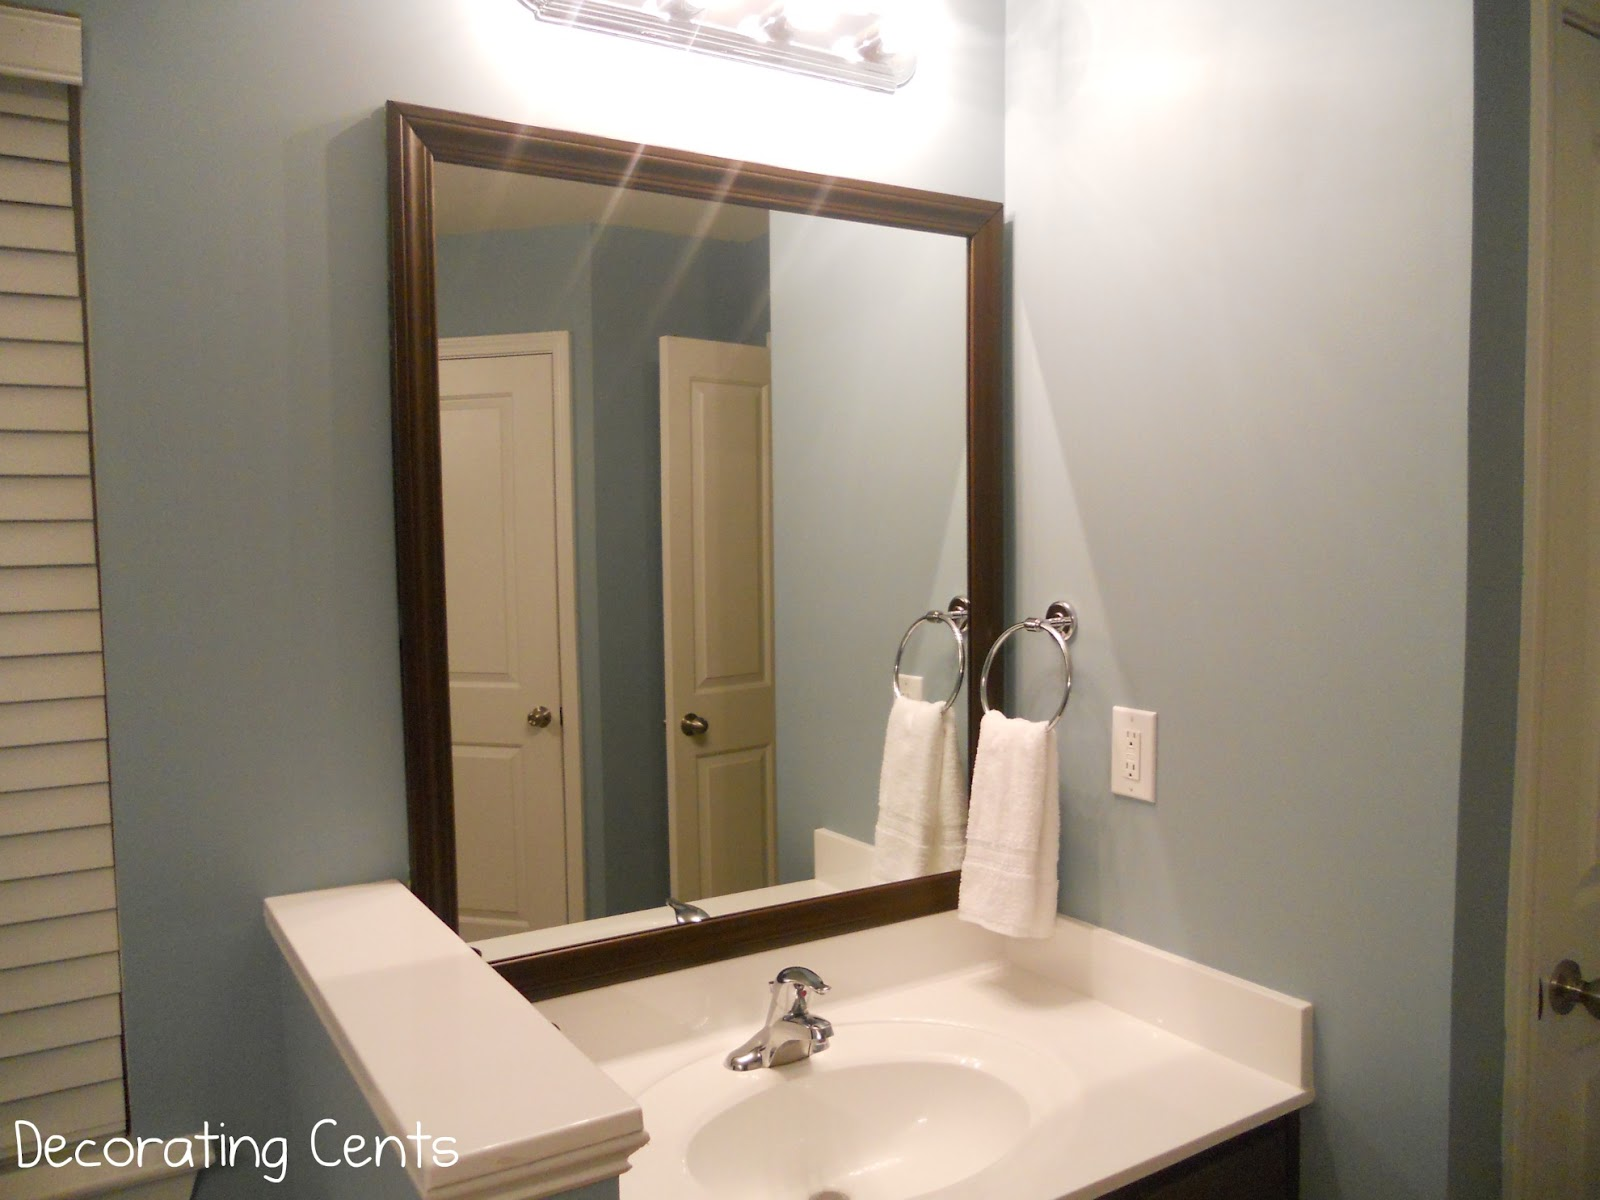 Mirror In The Bathroom Best Decorating Cents Framing The Bathroom Mirrors 2017